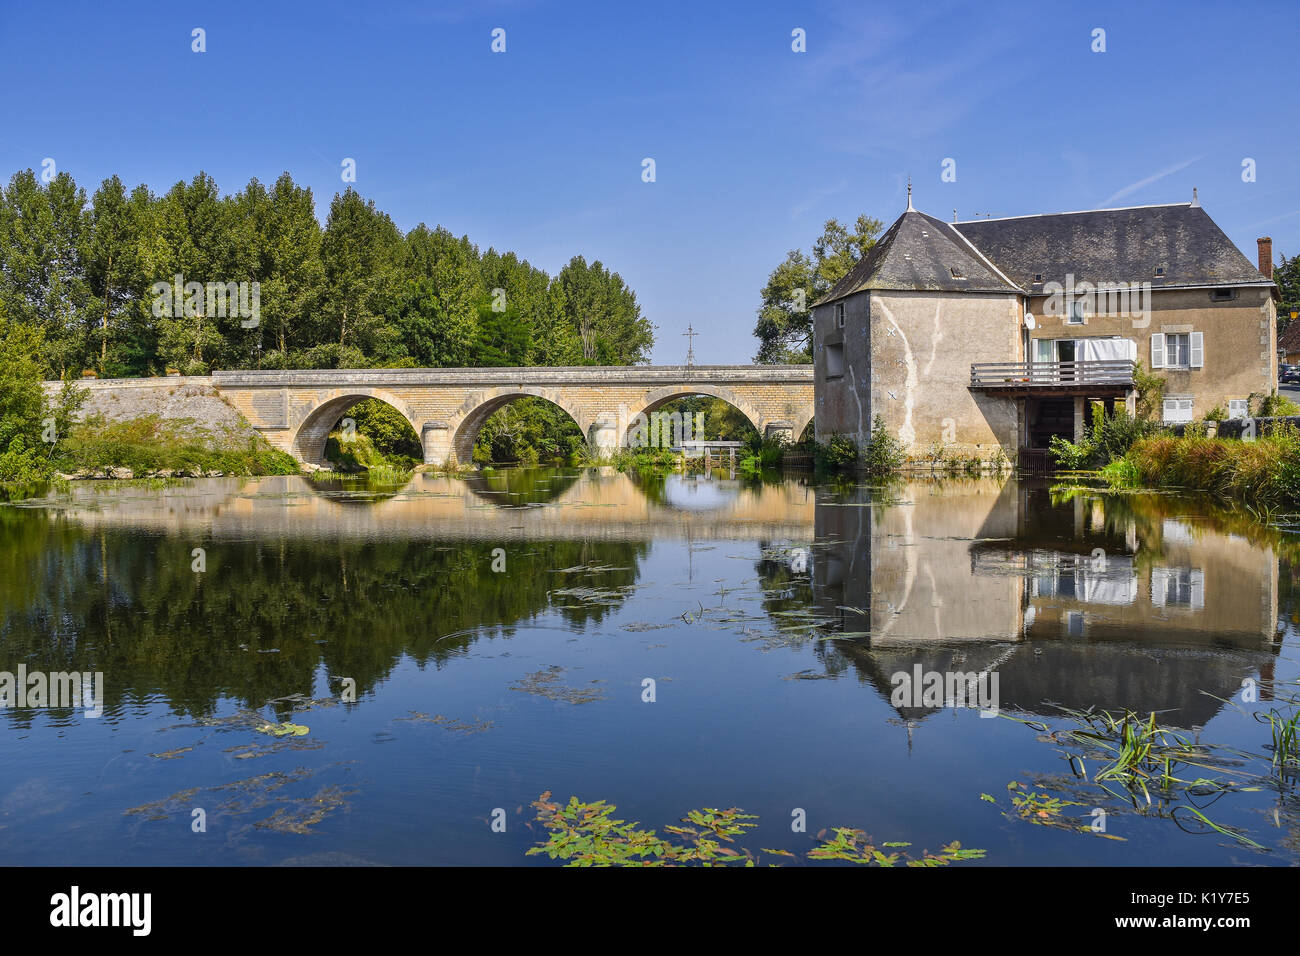 Watermill and bridge across river Gartempe, Saint-Pierre-de-Maillé, Vienne, France. - Stock Image